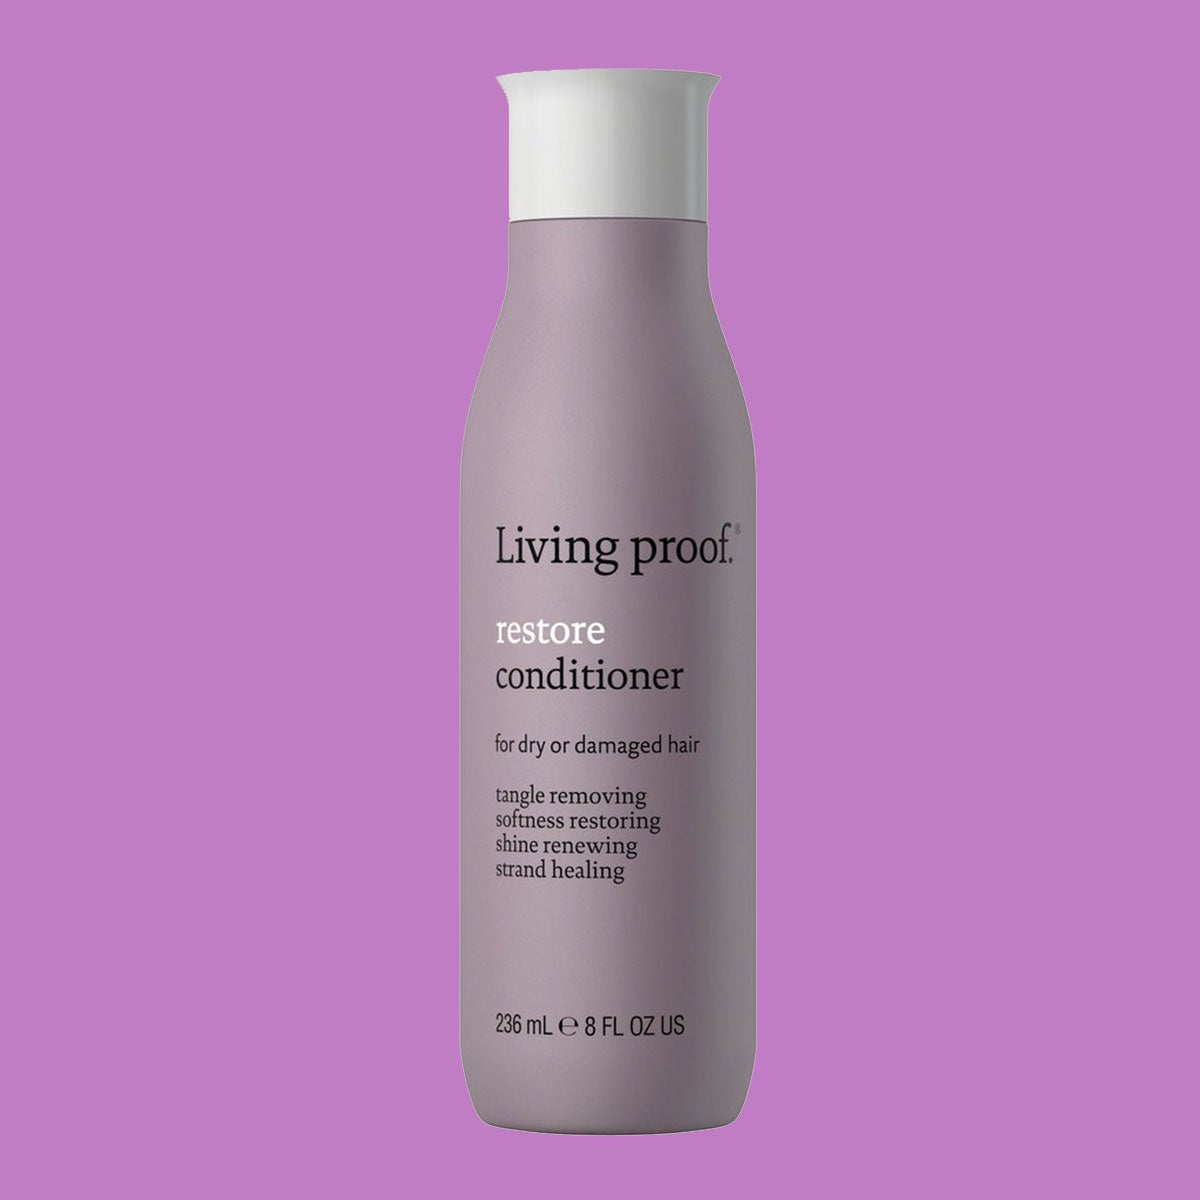 17 Best Conditioners For Low Porosity Hair - Essence